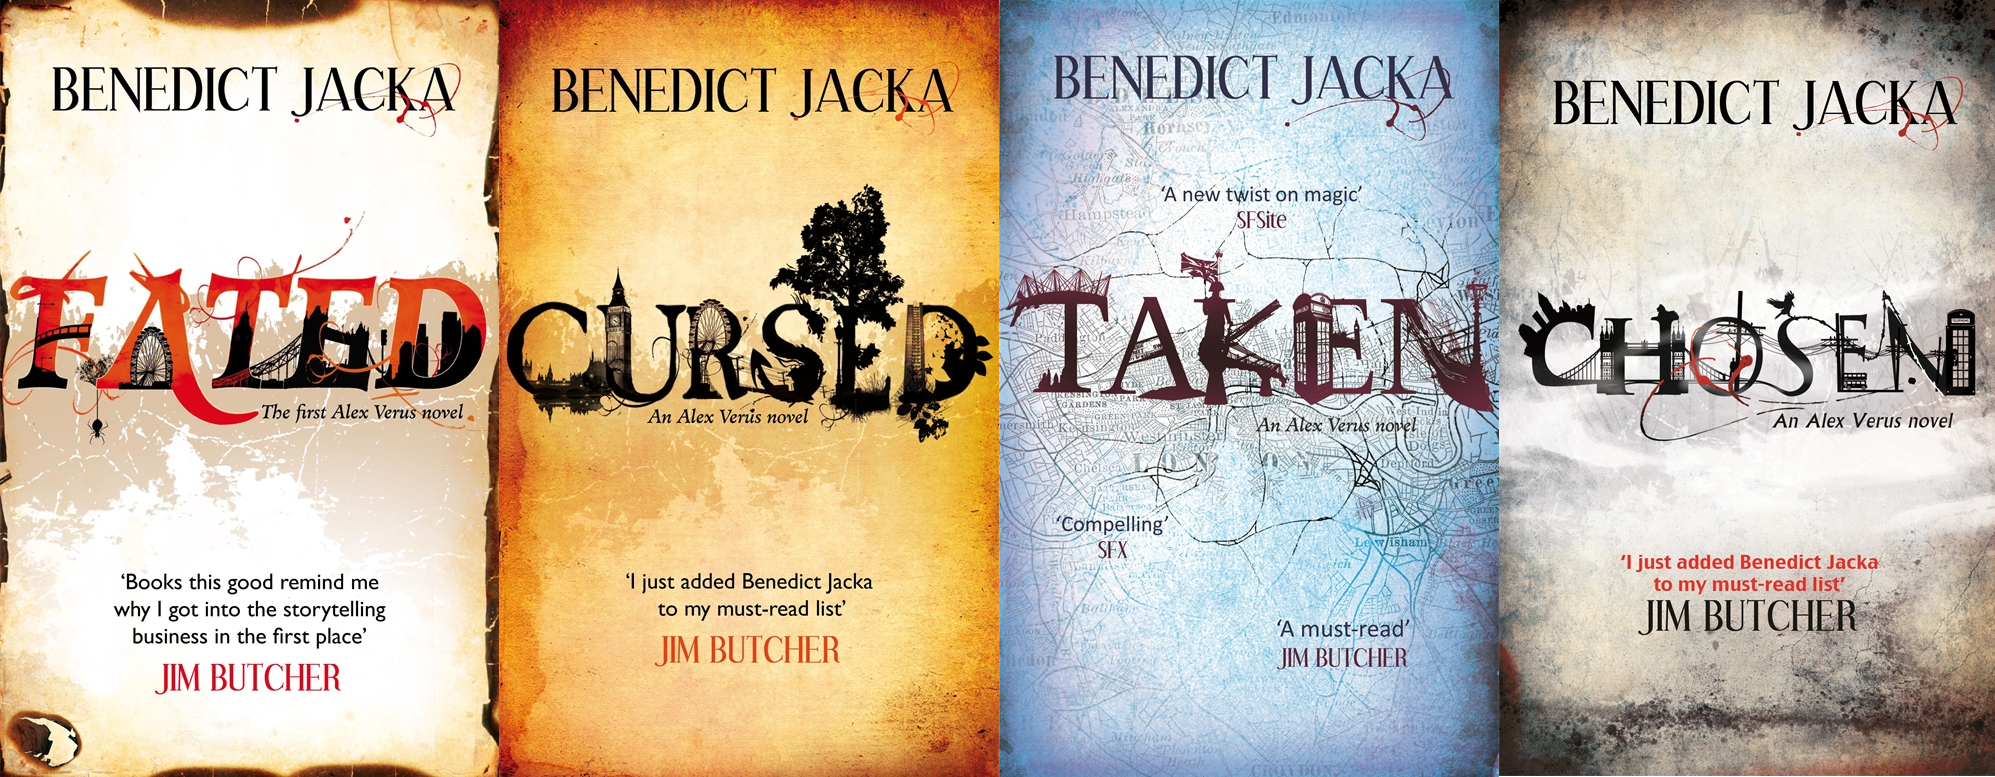 Banner shows the Alex Verus series: magical London urban fantasy by Benedict Jacka